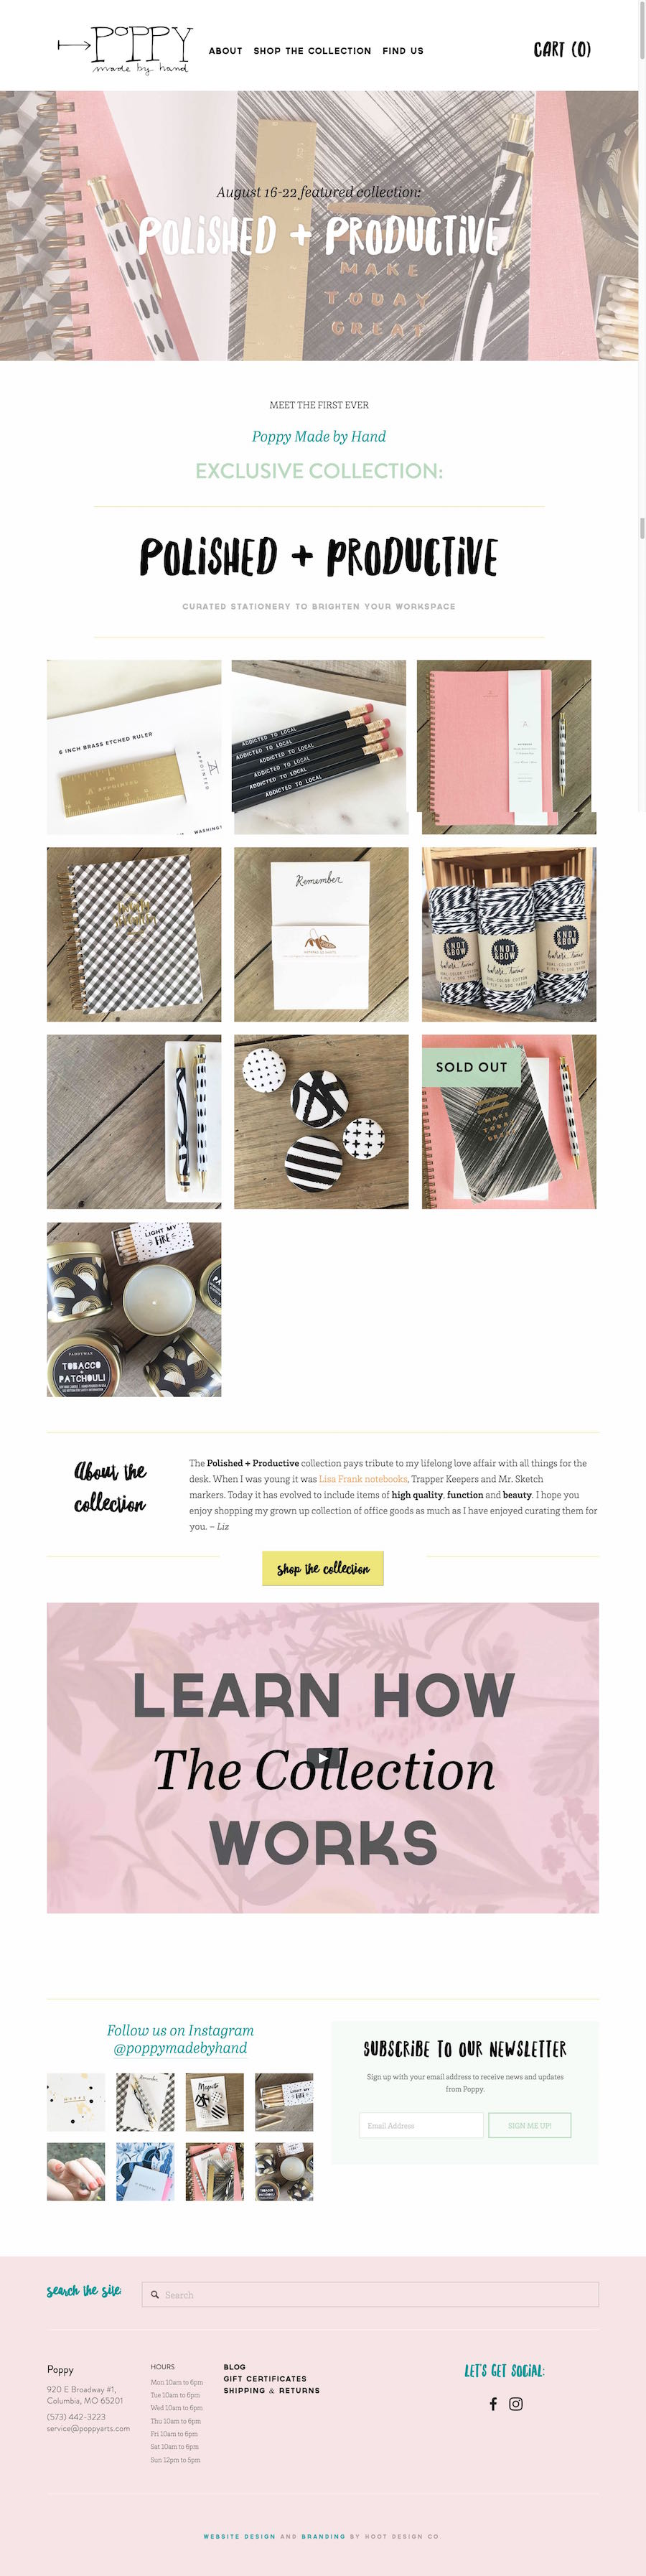 Ecommerce website design for Poppy Made By Hand in Columbia, MO | Hoot Design Co.